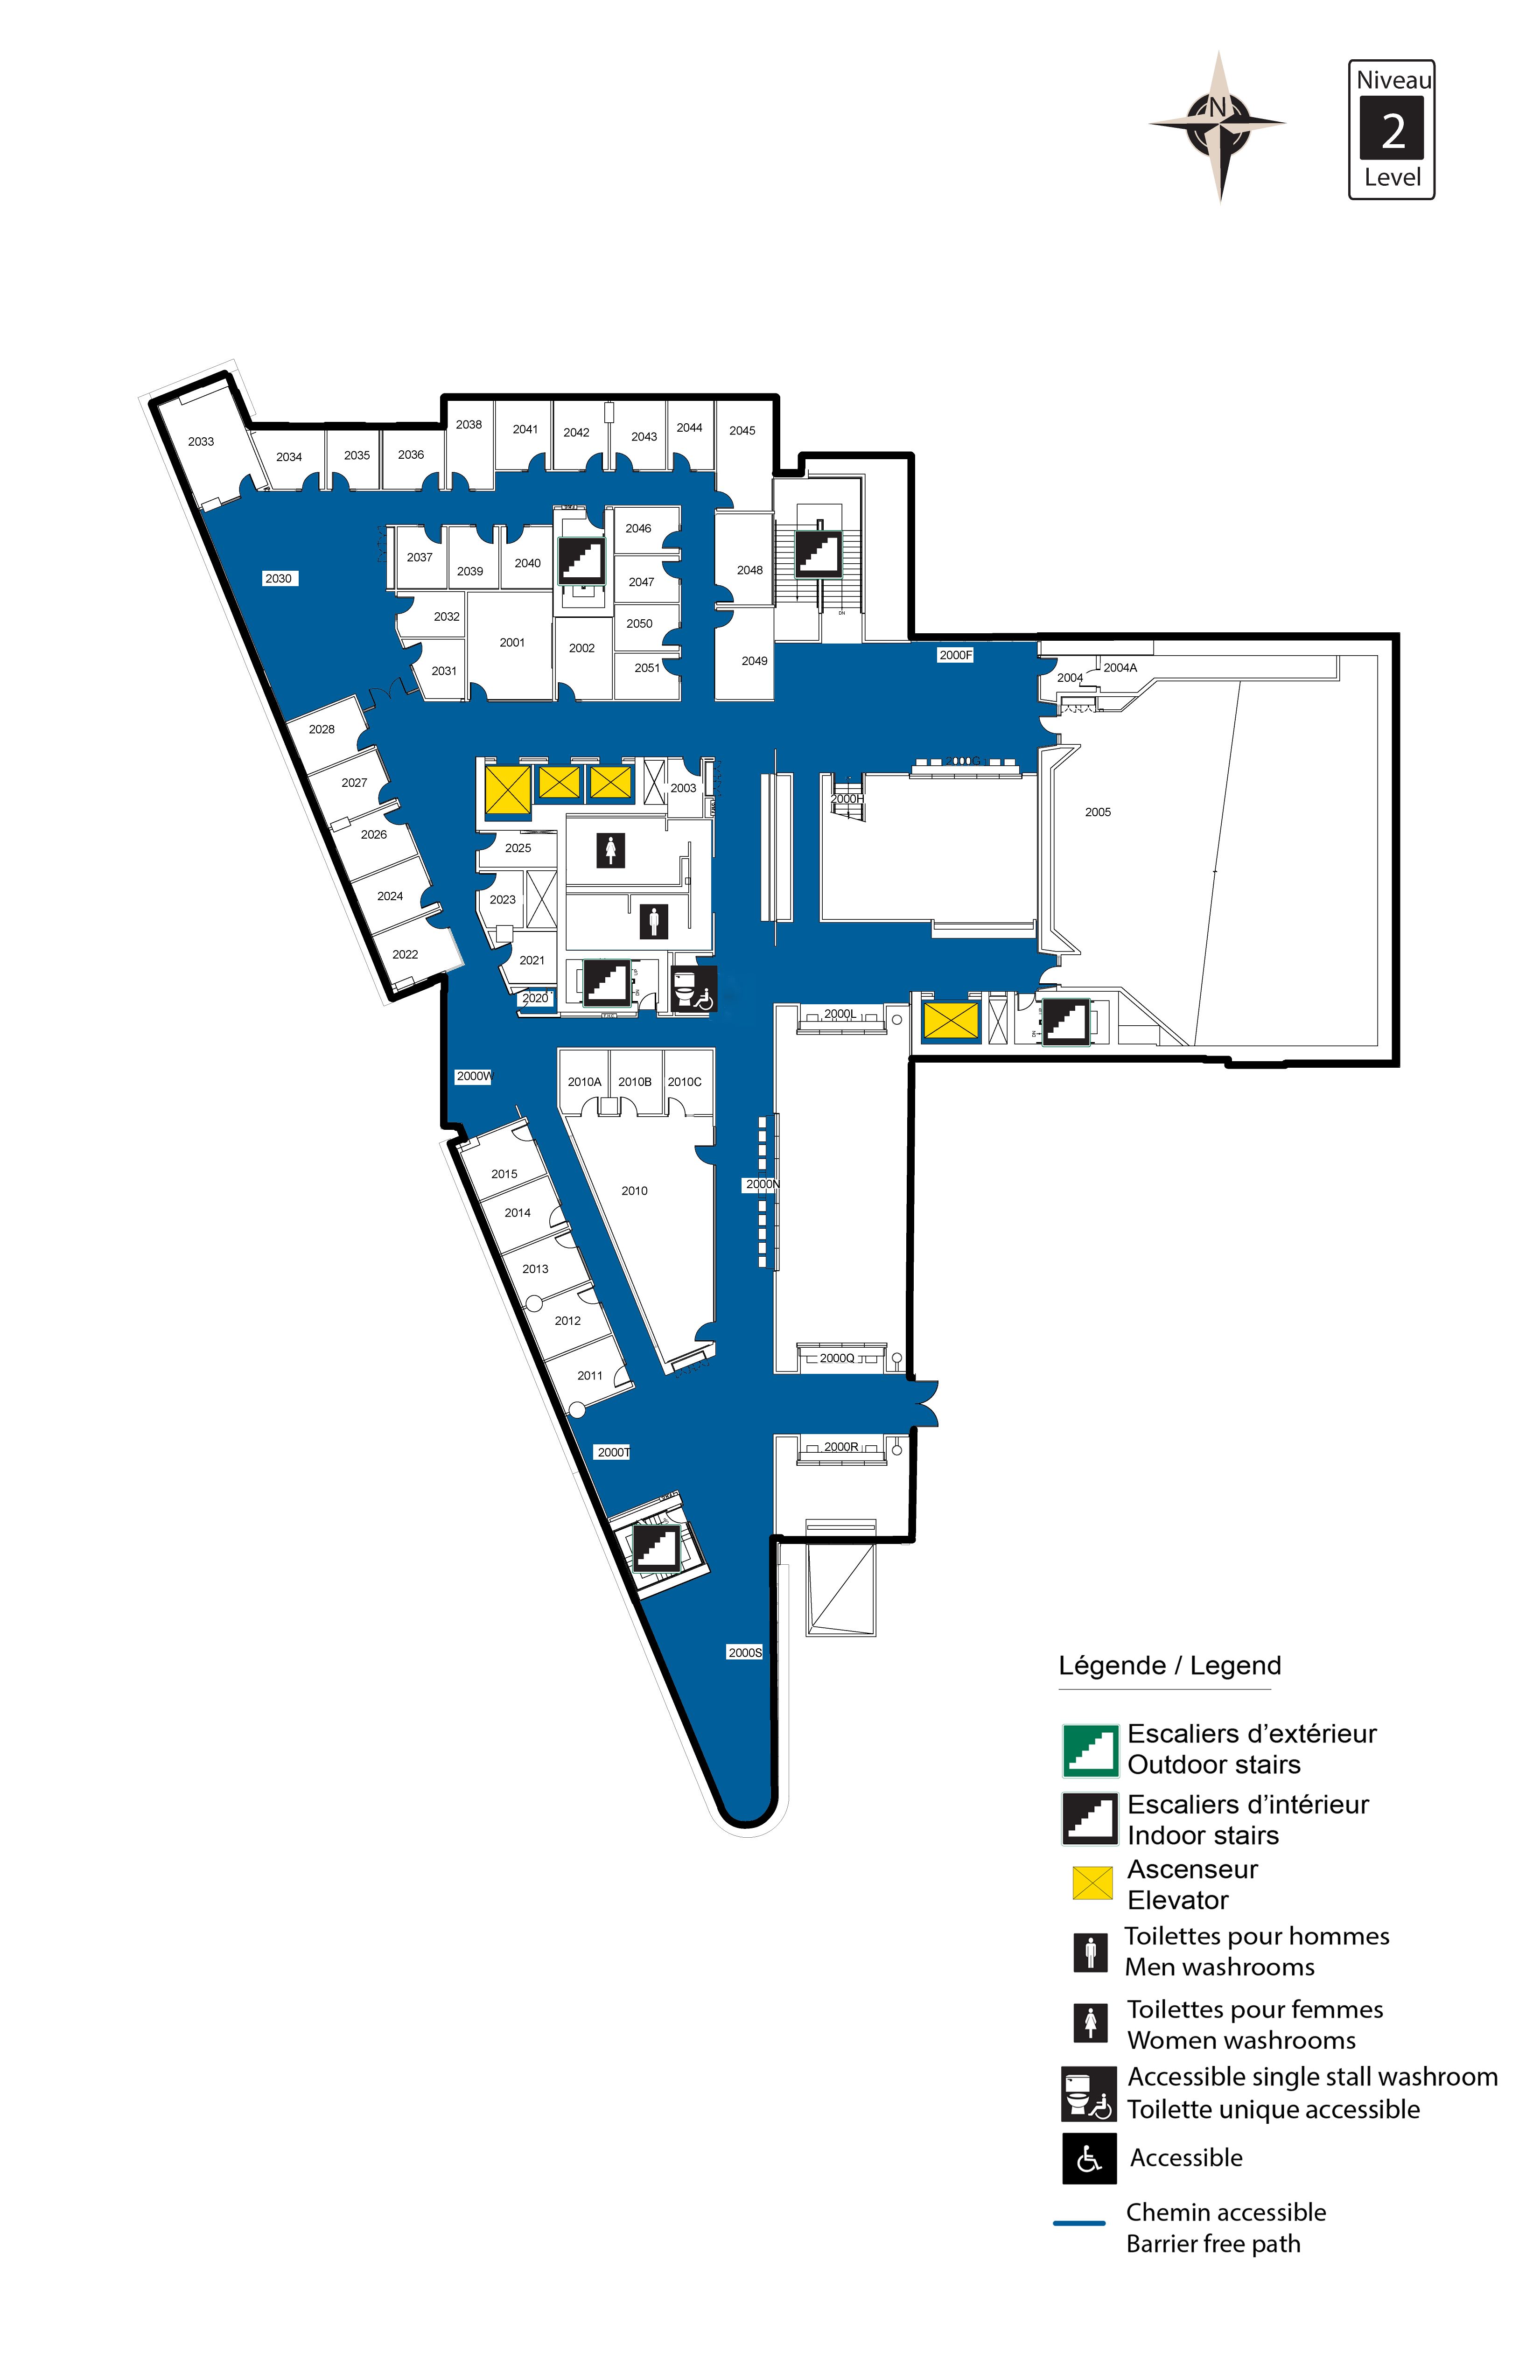 Accessible Map - FSS Level 2